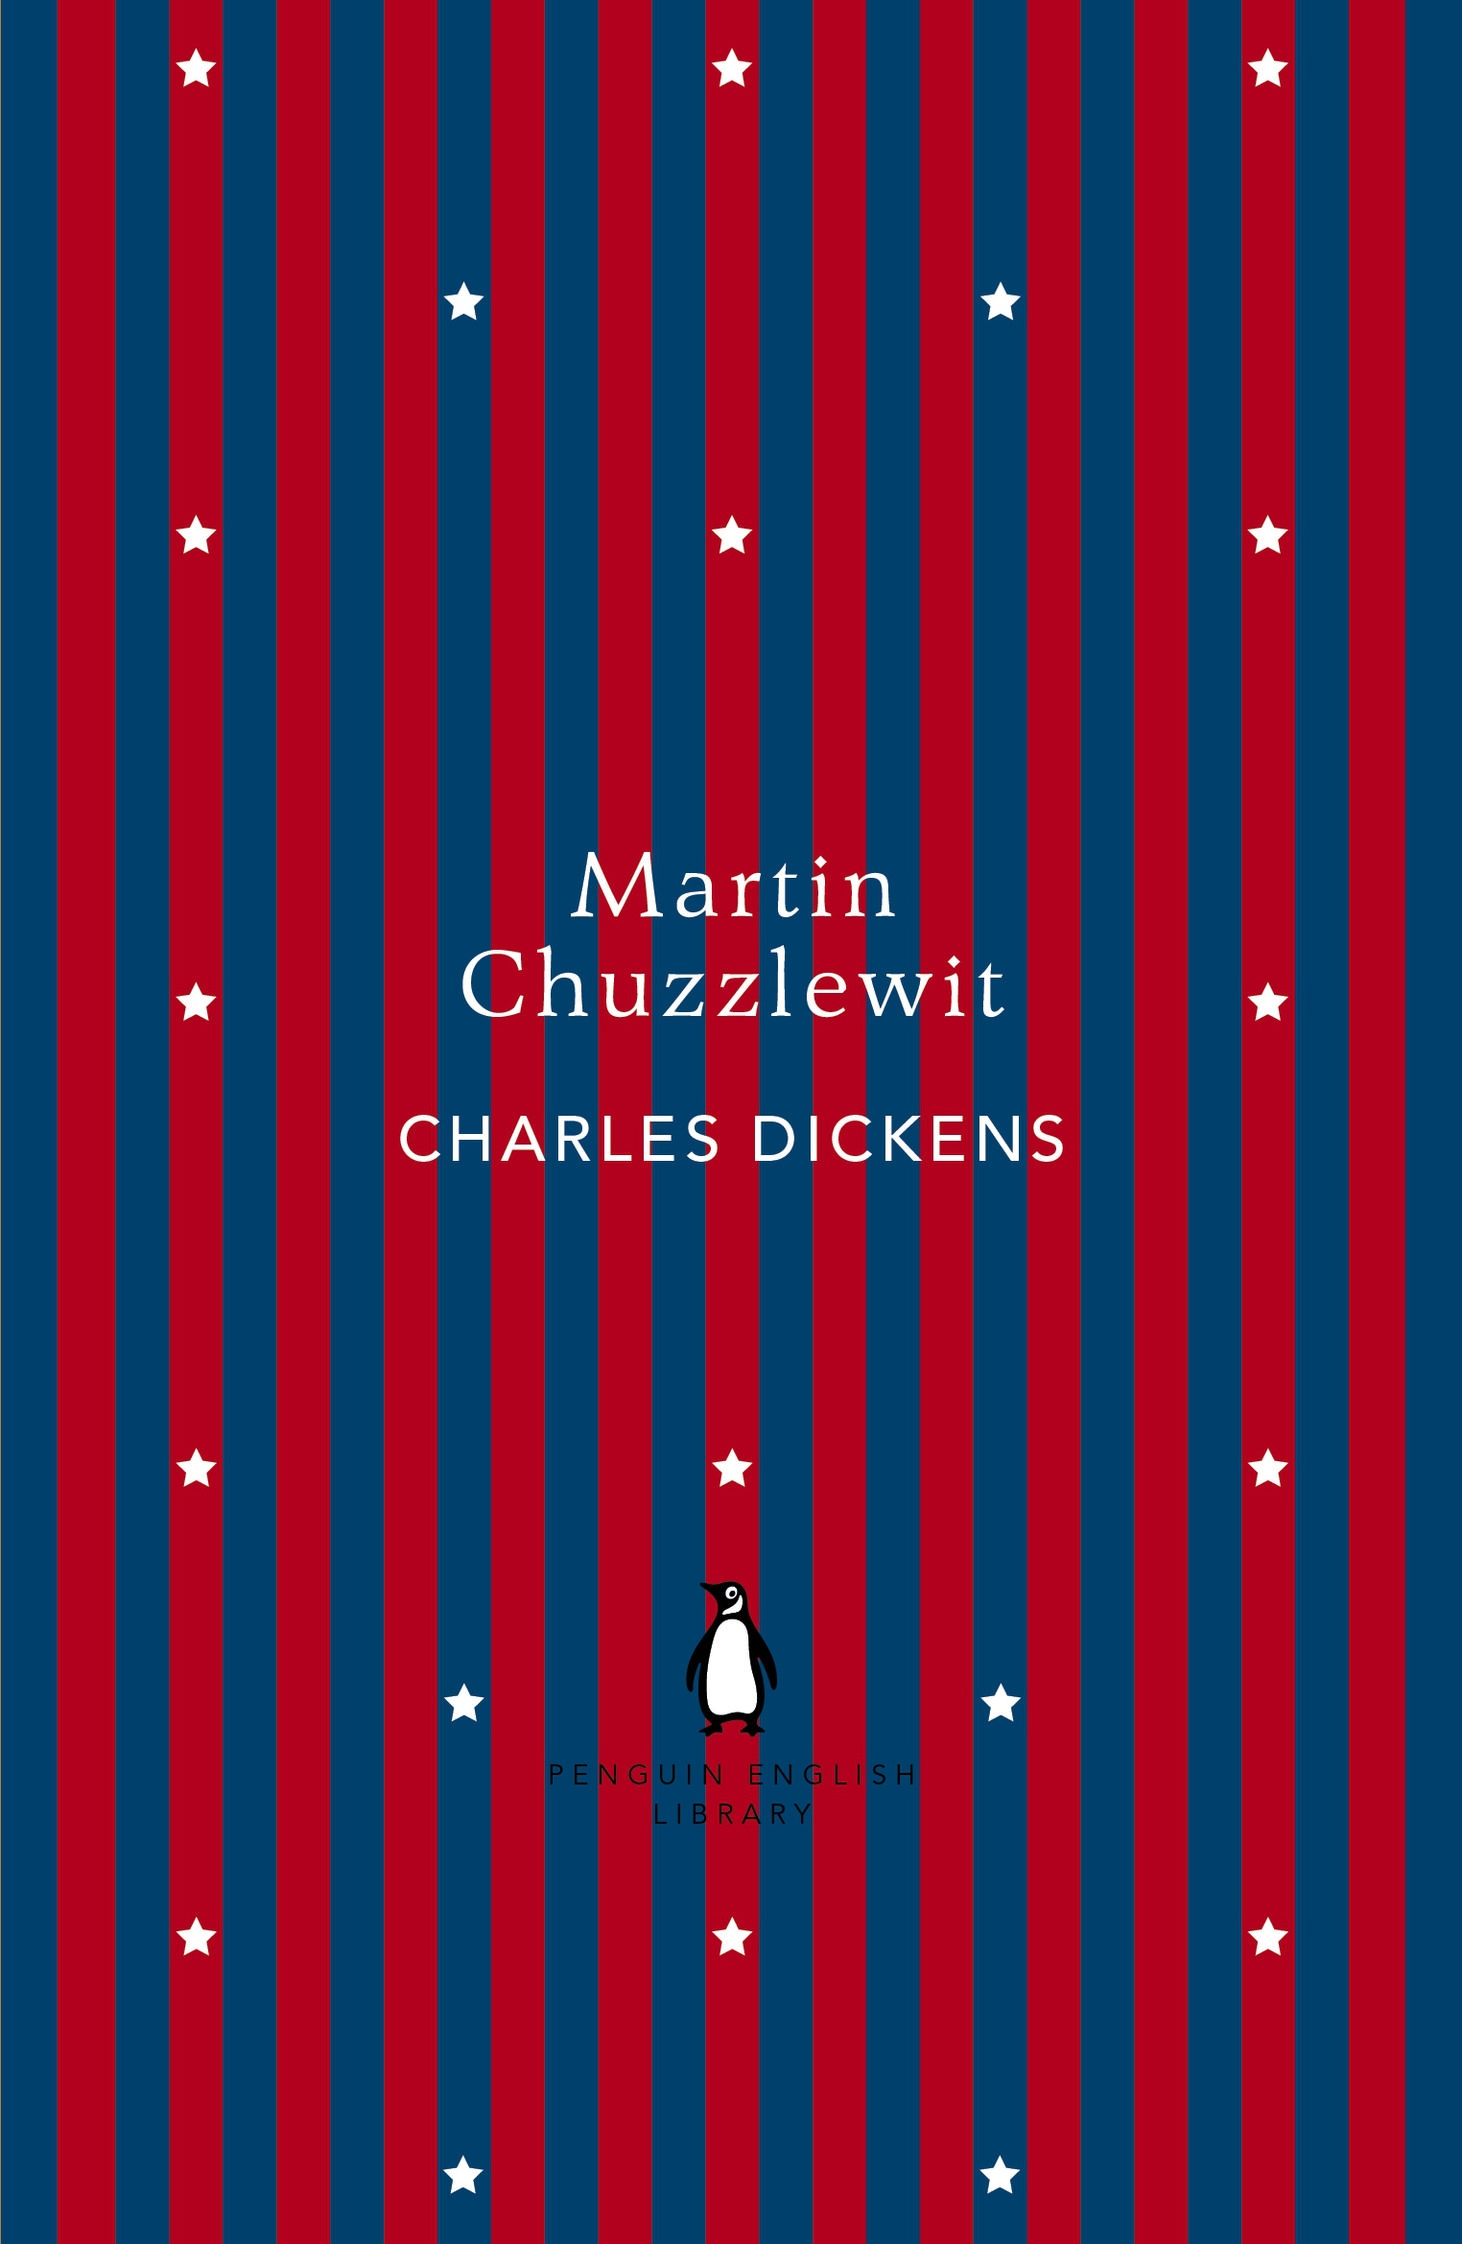 Martin Chuzzlewit by Charles Dickens, ISBN: 9780141198903